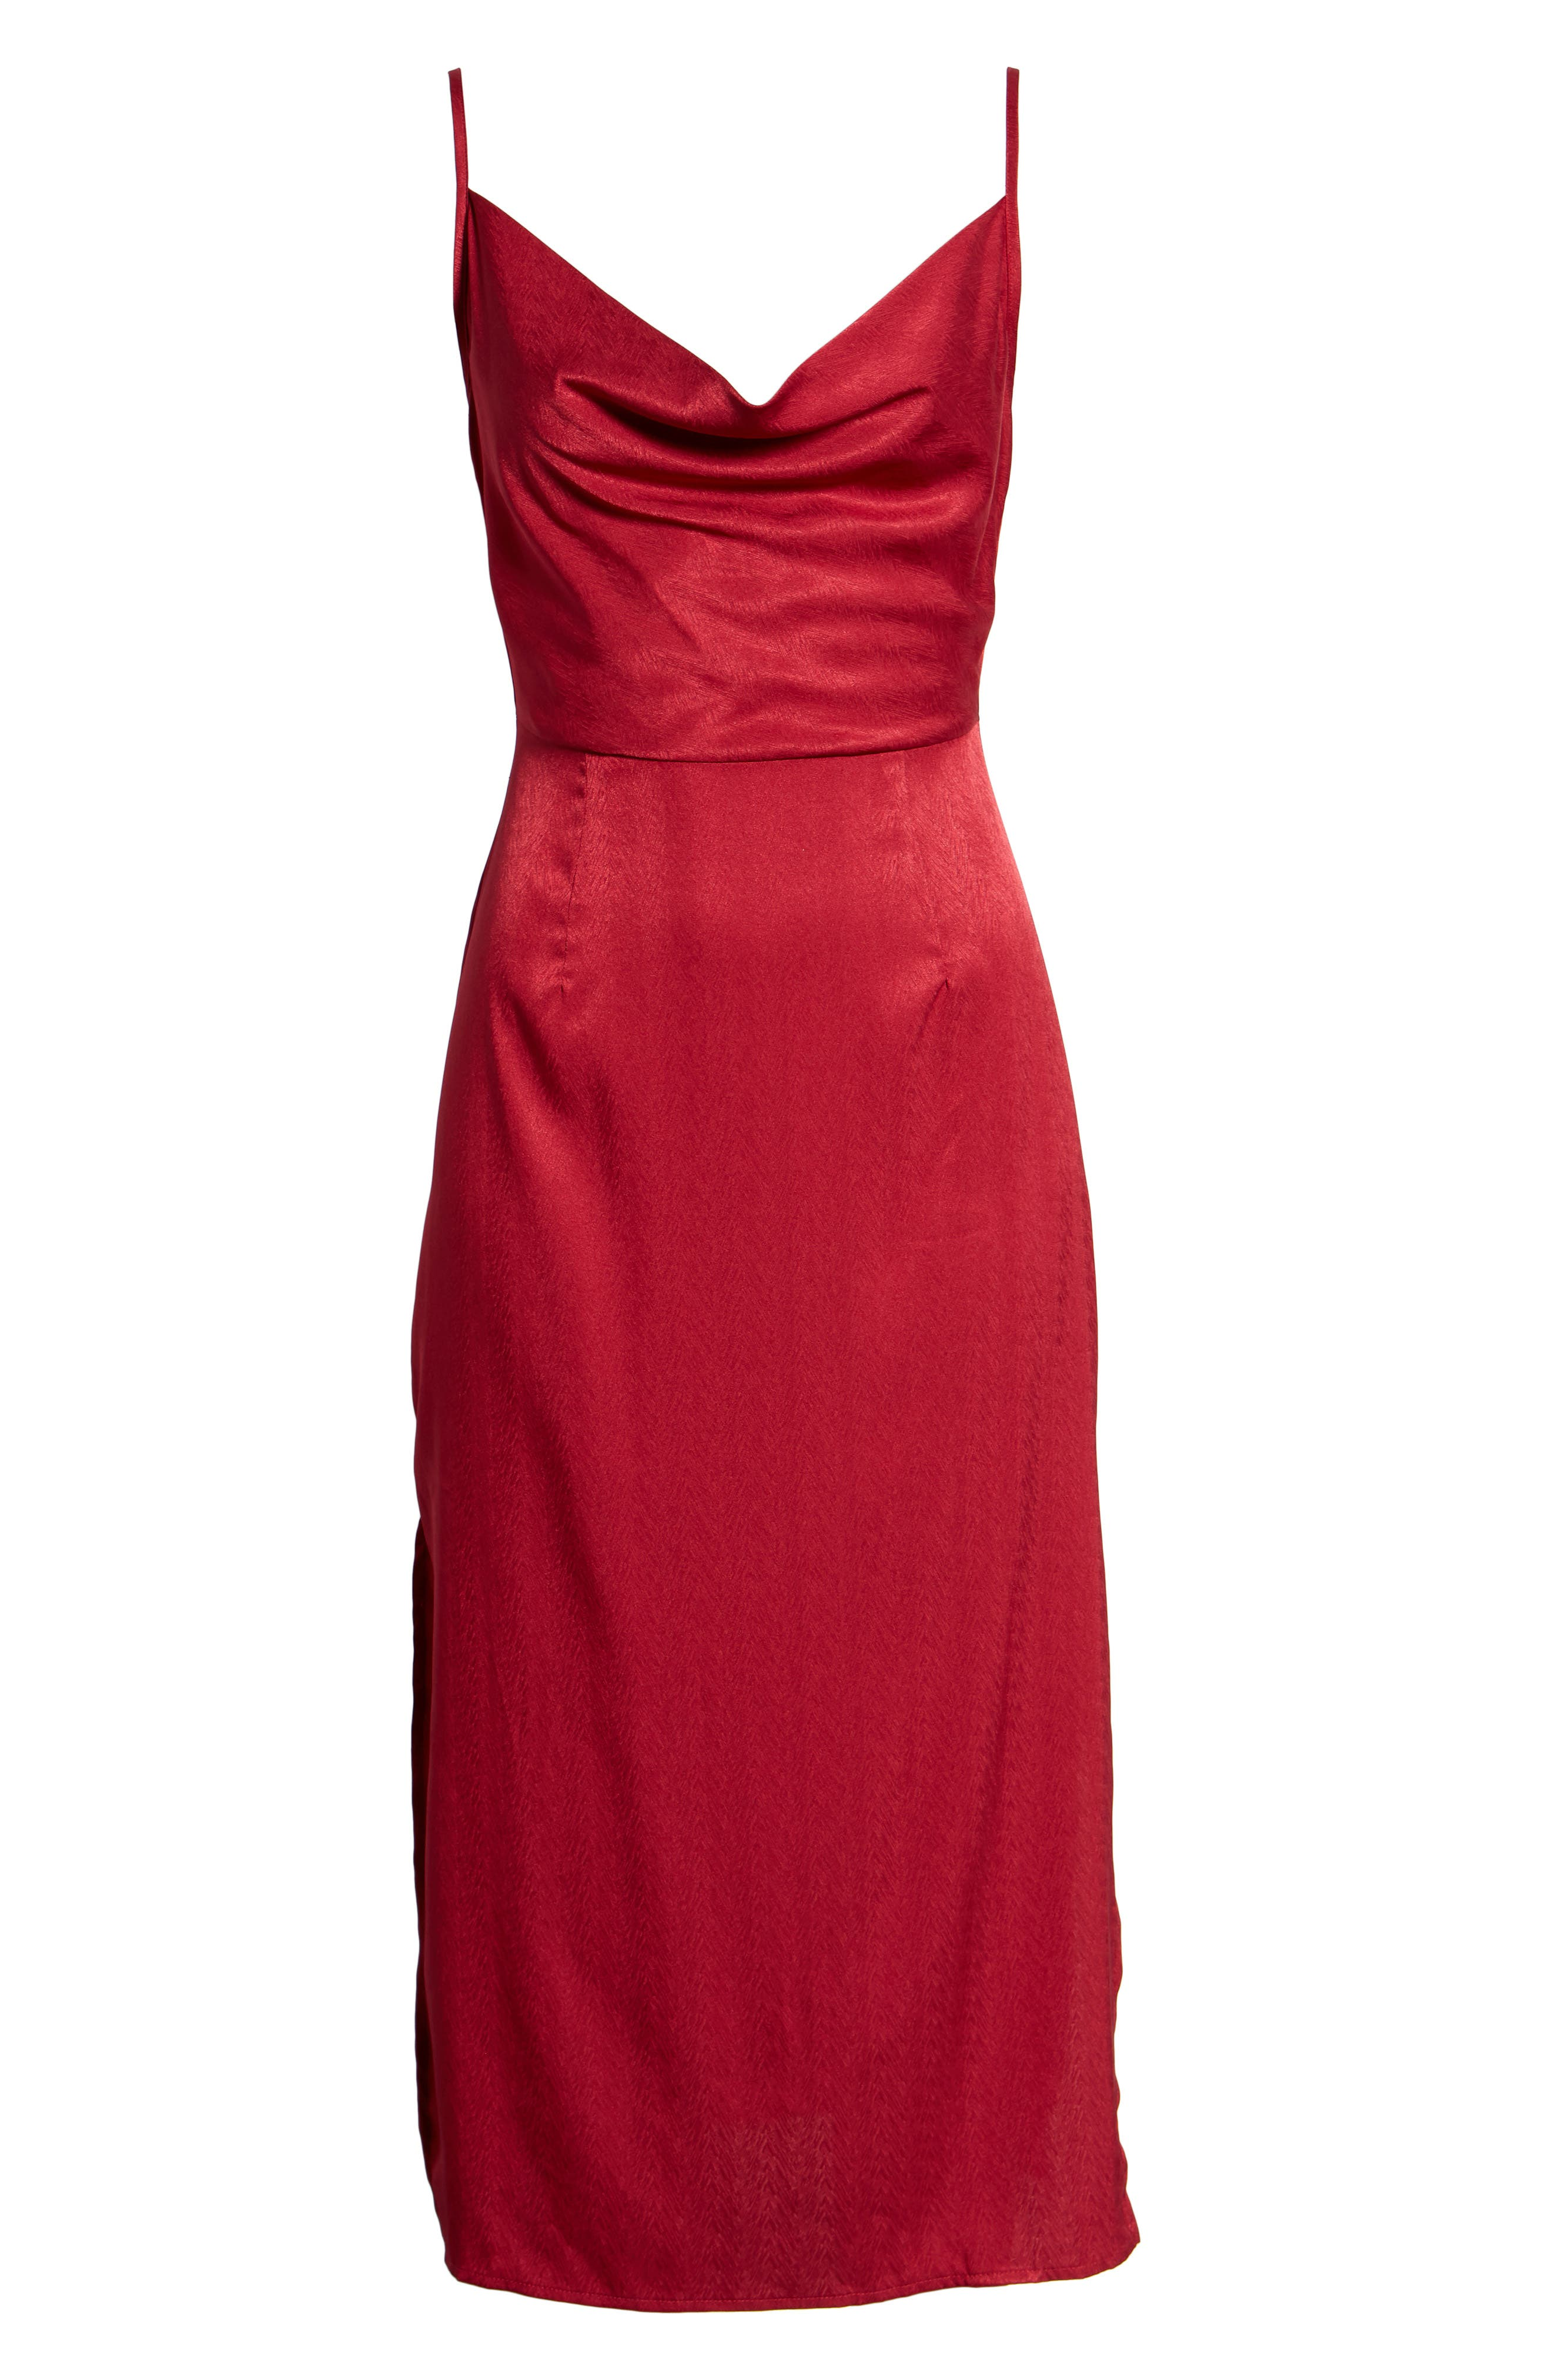 Lotti Cowl Neck Midi Dress,                             Alternate thumbnail 7, color,                             CHERRY